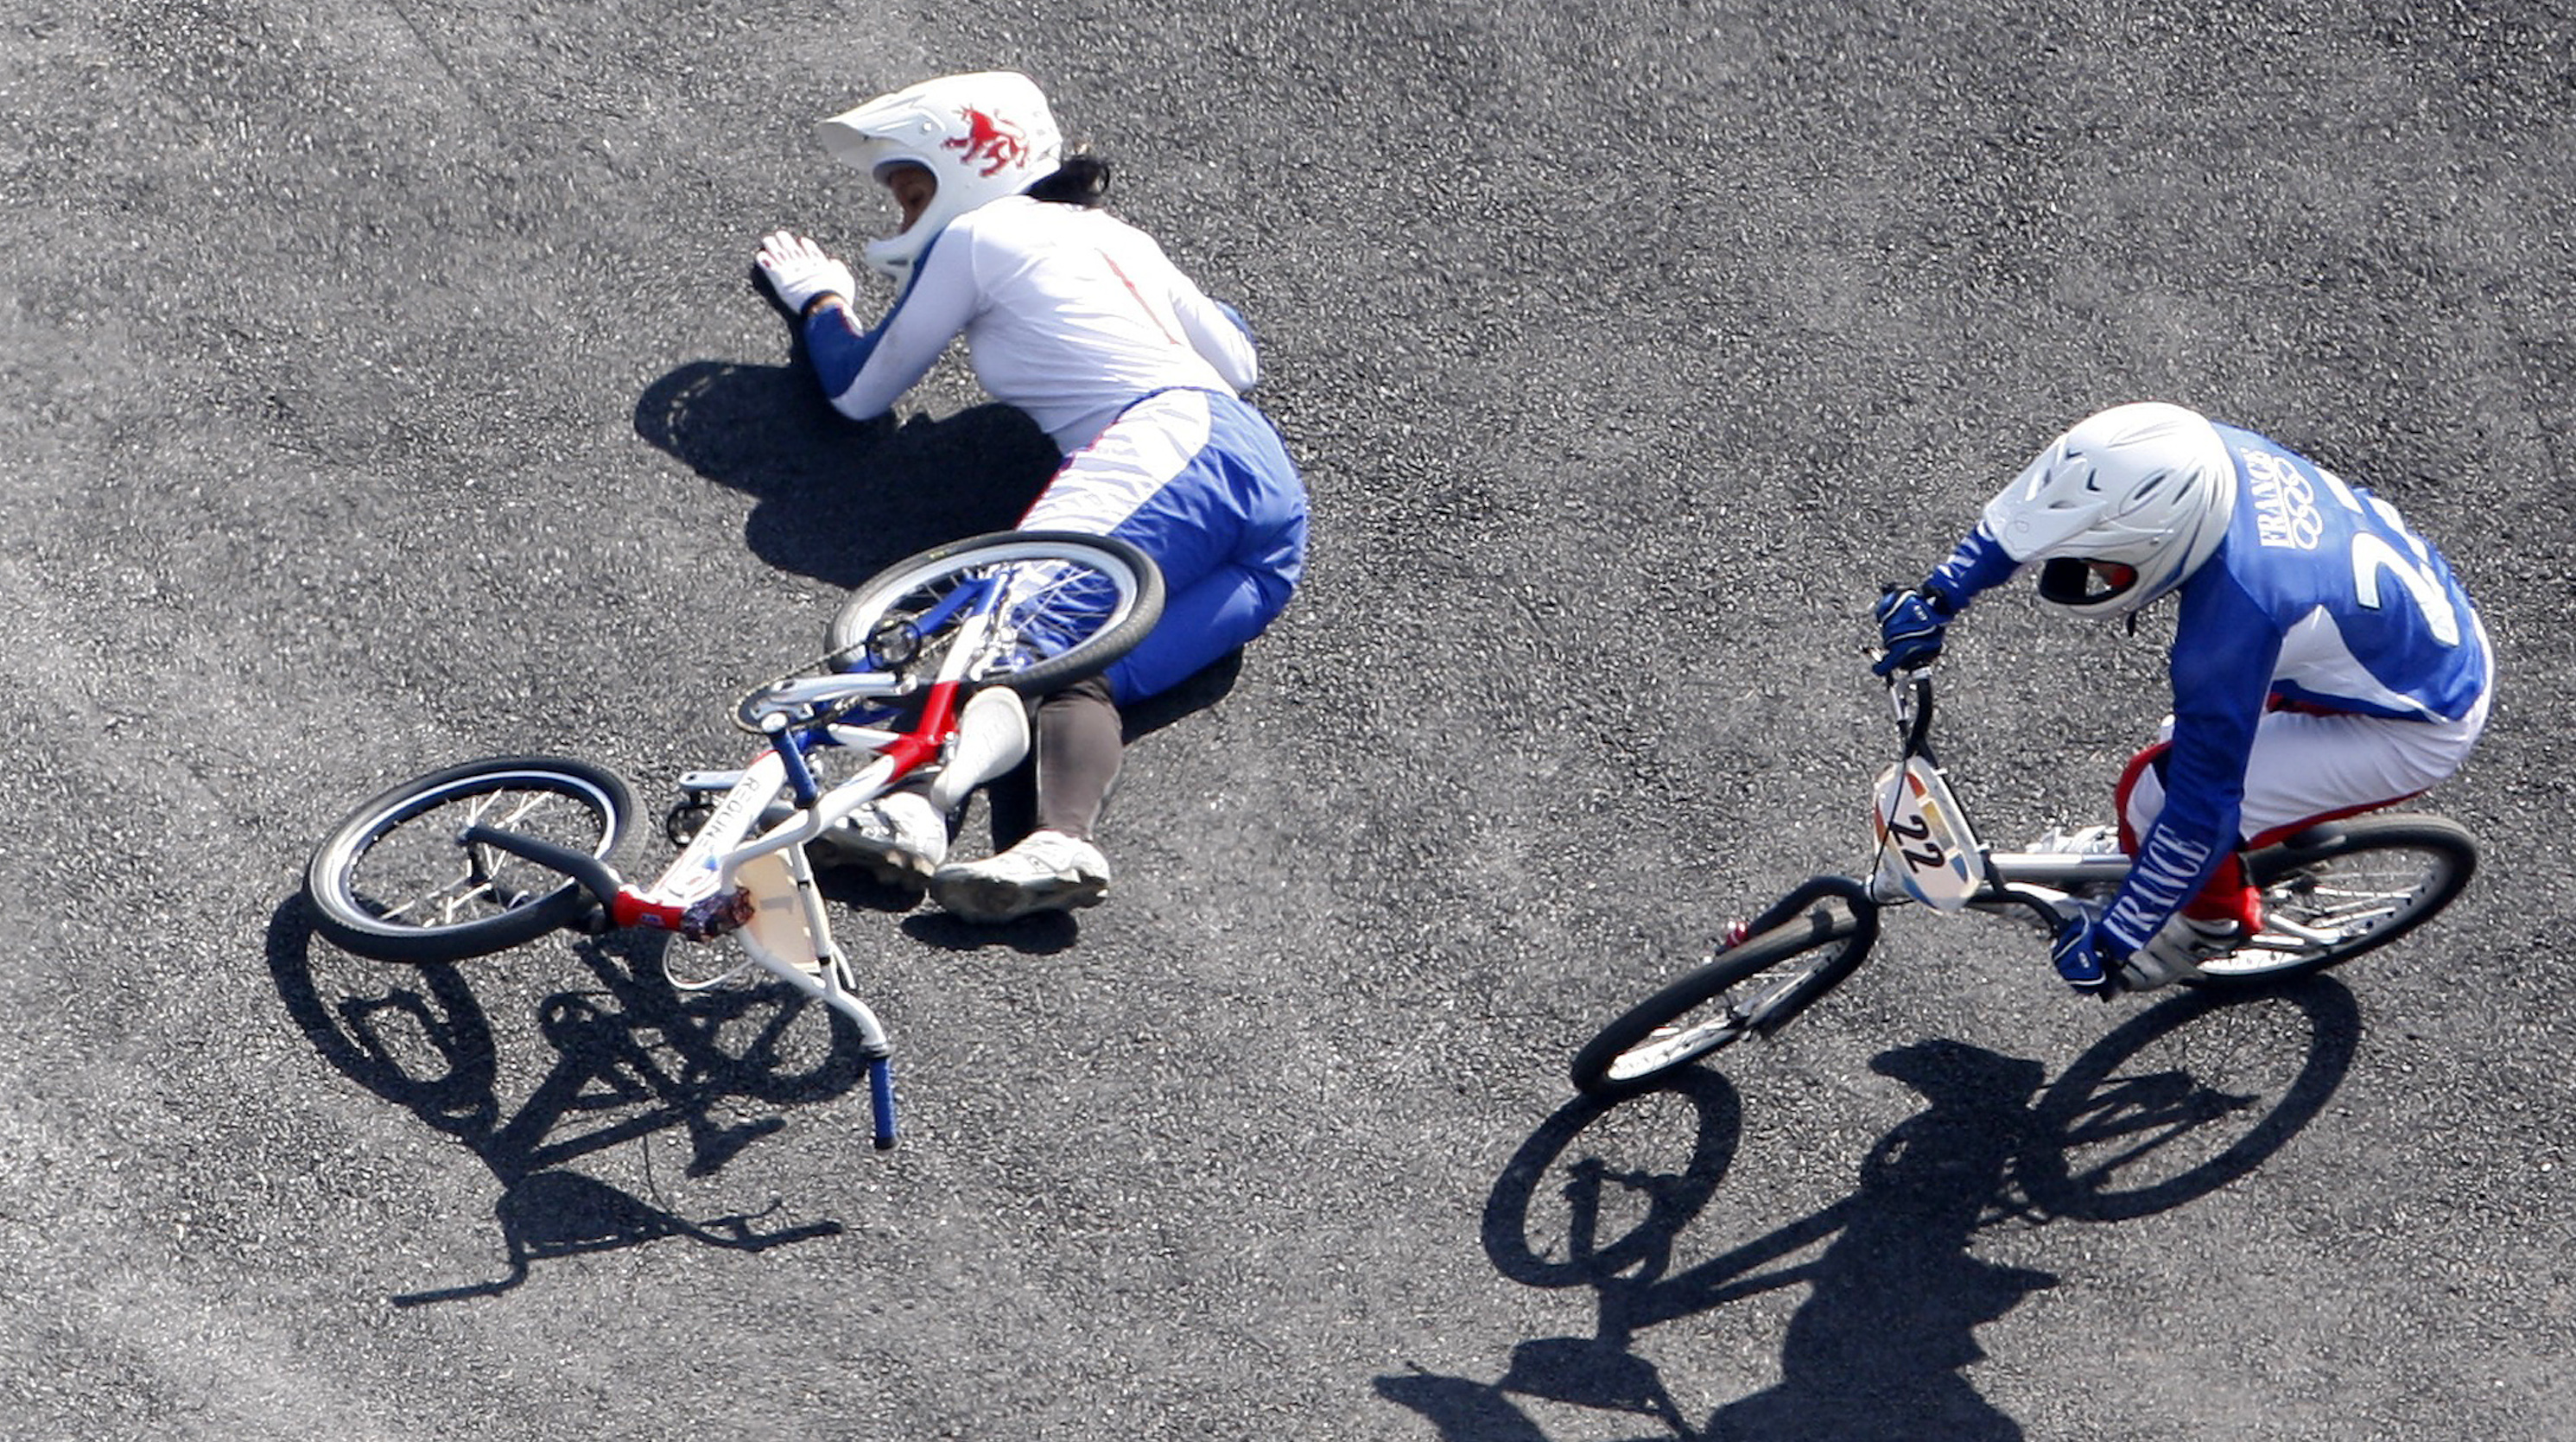 Laetitia le Corguille of France overtakes Shanaze Reade of Britain after Reade falls during the women's final run for the BMX cycling competition at the Beijing 2008 Olympic Games